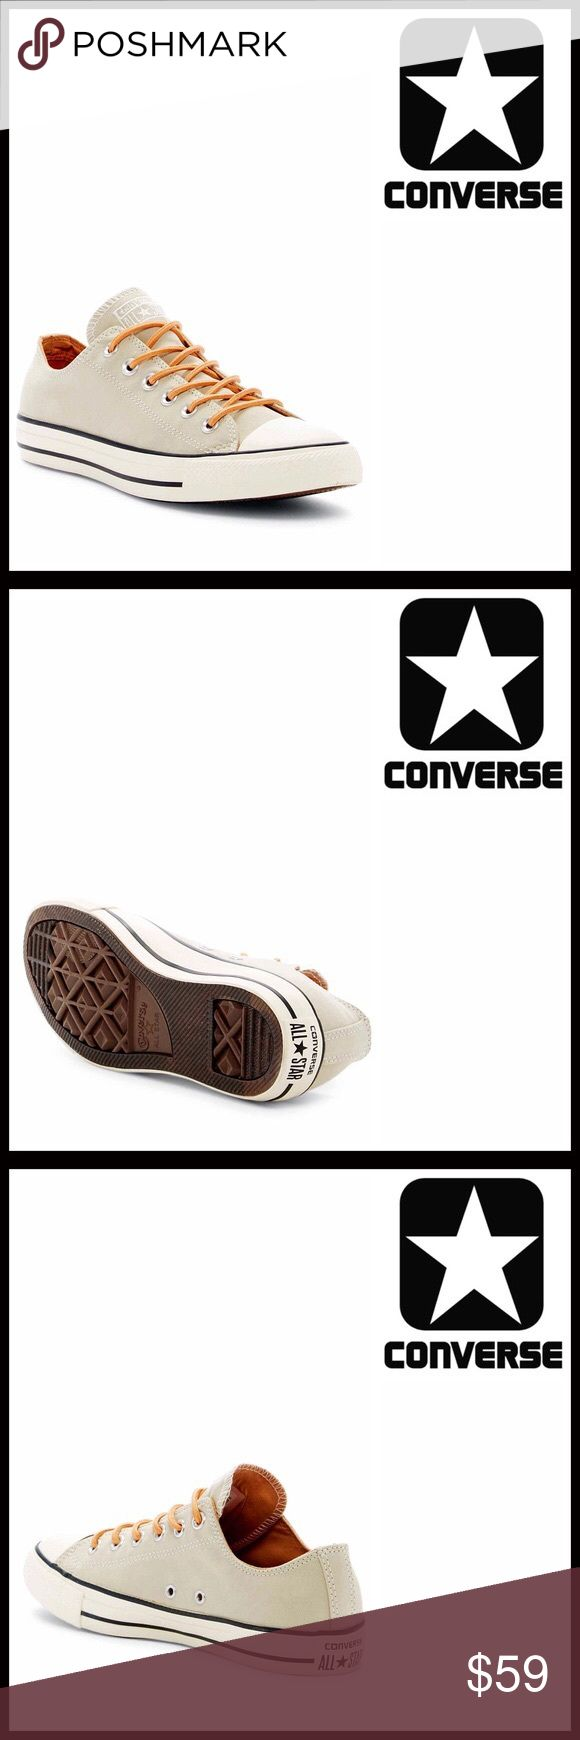 ❗1-HOUR SALE❗CONVERSE STYLISH CANVAS SNEAKERS 💟NEW WITH TAGS💟   CONVERSE STYLISH CANVAS SNEAKERS Oxfords   SIZING- Unisex, Women's sizes are shown in listing, Women's size 10 = men's size 8   * Round rubber cap toe; lace up * Flat sneaker sole  * Contrast trim  * Topstitch detail  * Non-marking textured grip sole & logo tongue * Black stripe outsole  Material: Textile upper, rubber sole  Color-Frayed burlap, white Item#C95200 Search words # non hi tops flatform   🚫No Trades🚫 ✅ Offers…